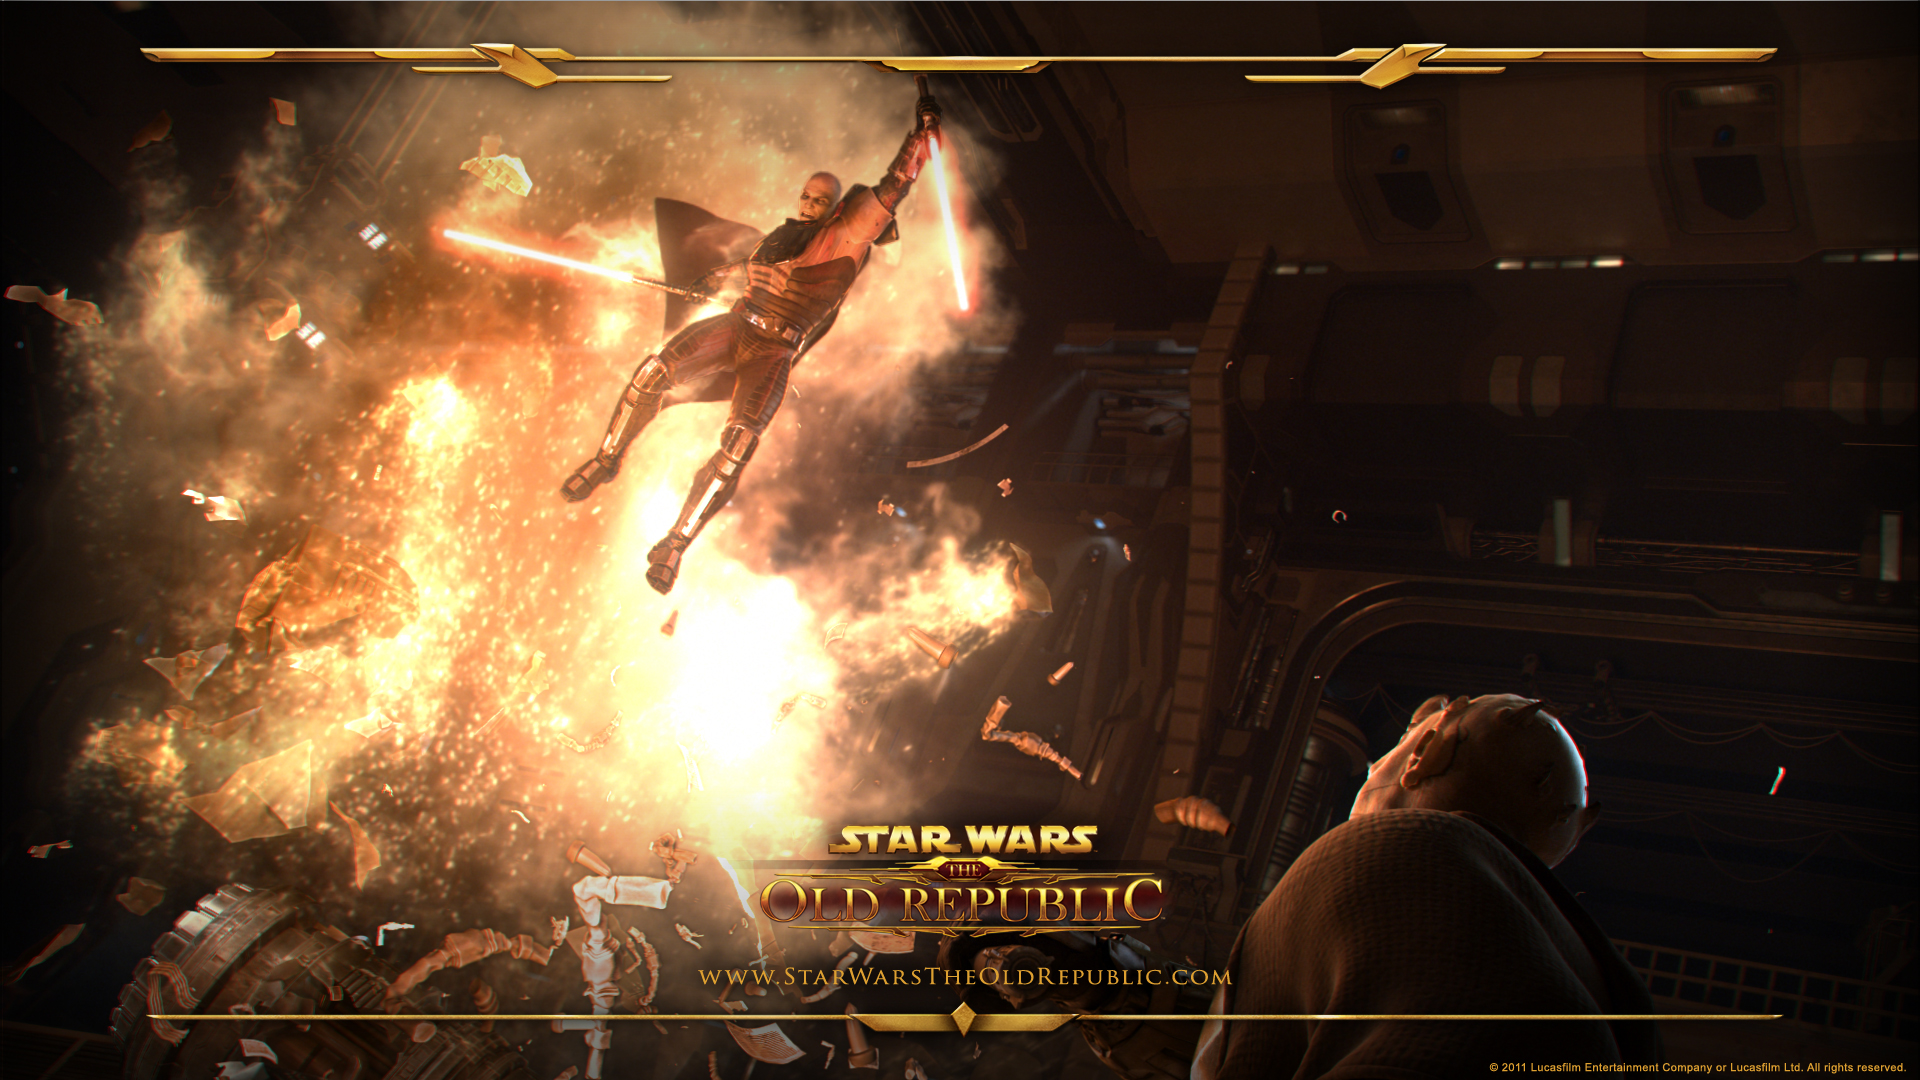 Star Wars the Old Republic wallpaper 1